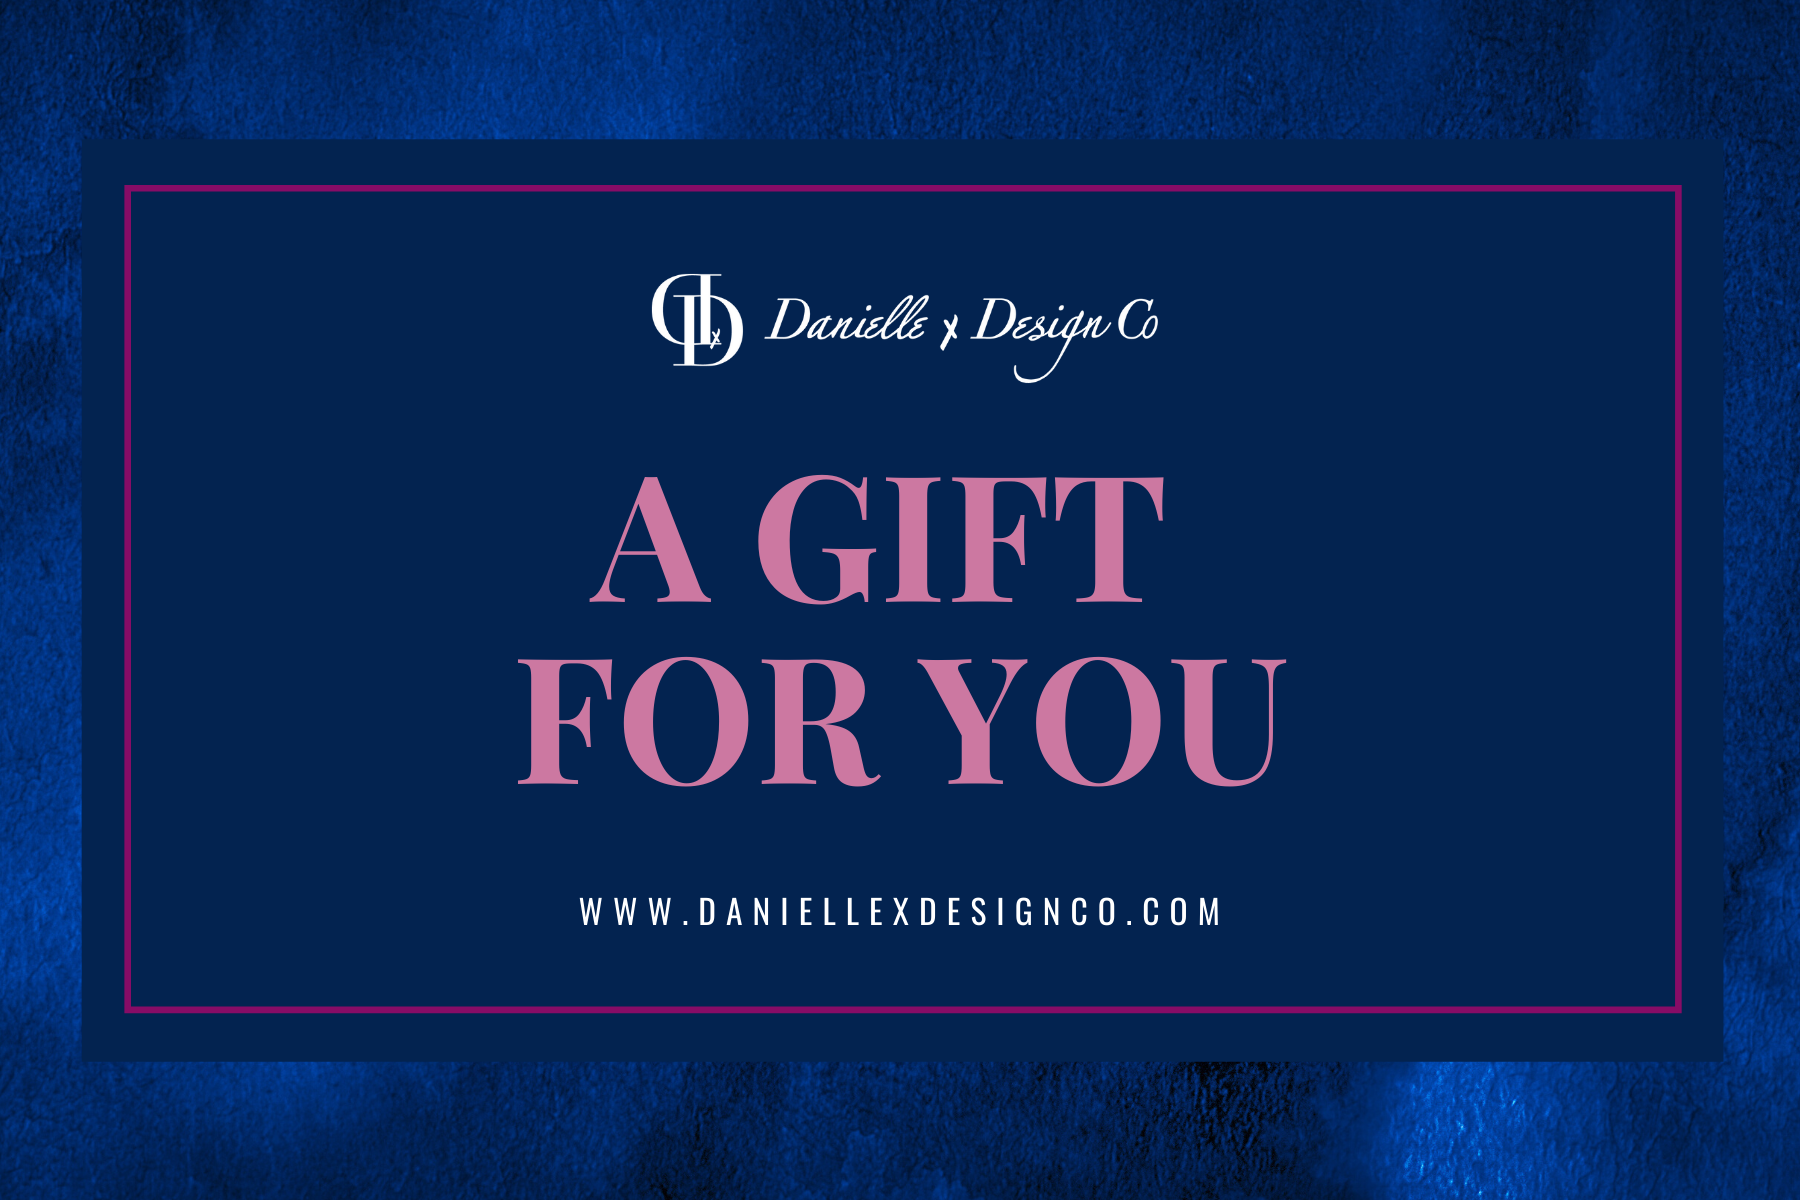 danielle x design co gift certificates